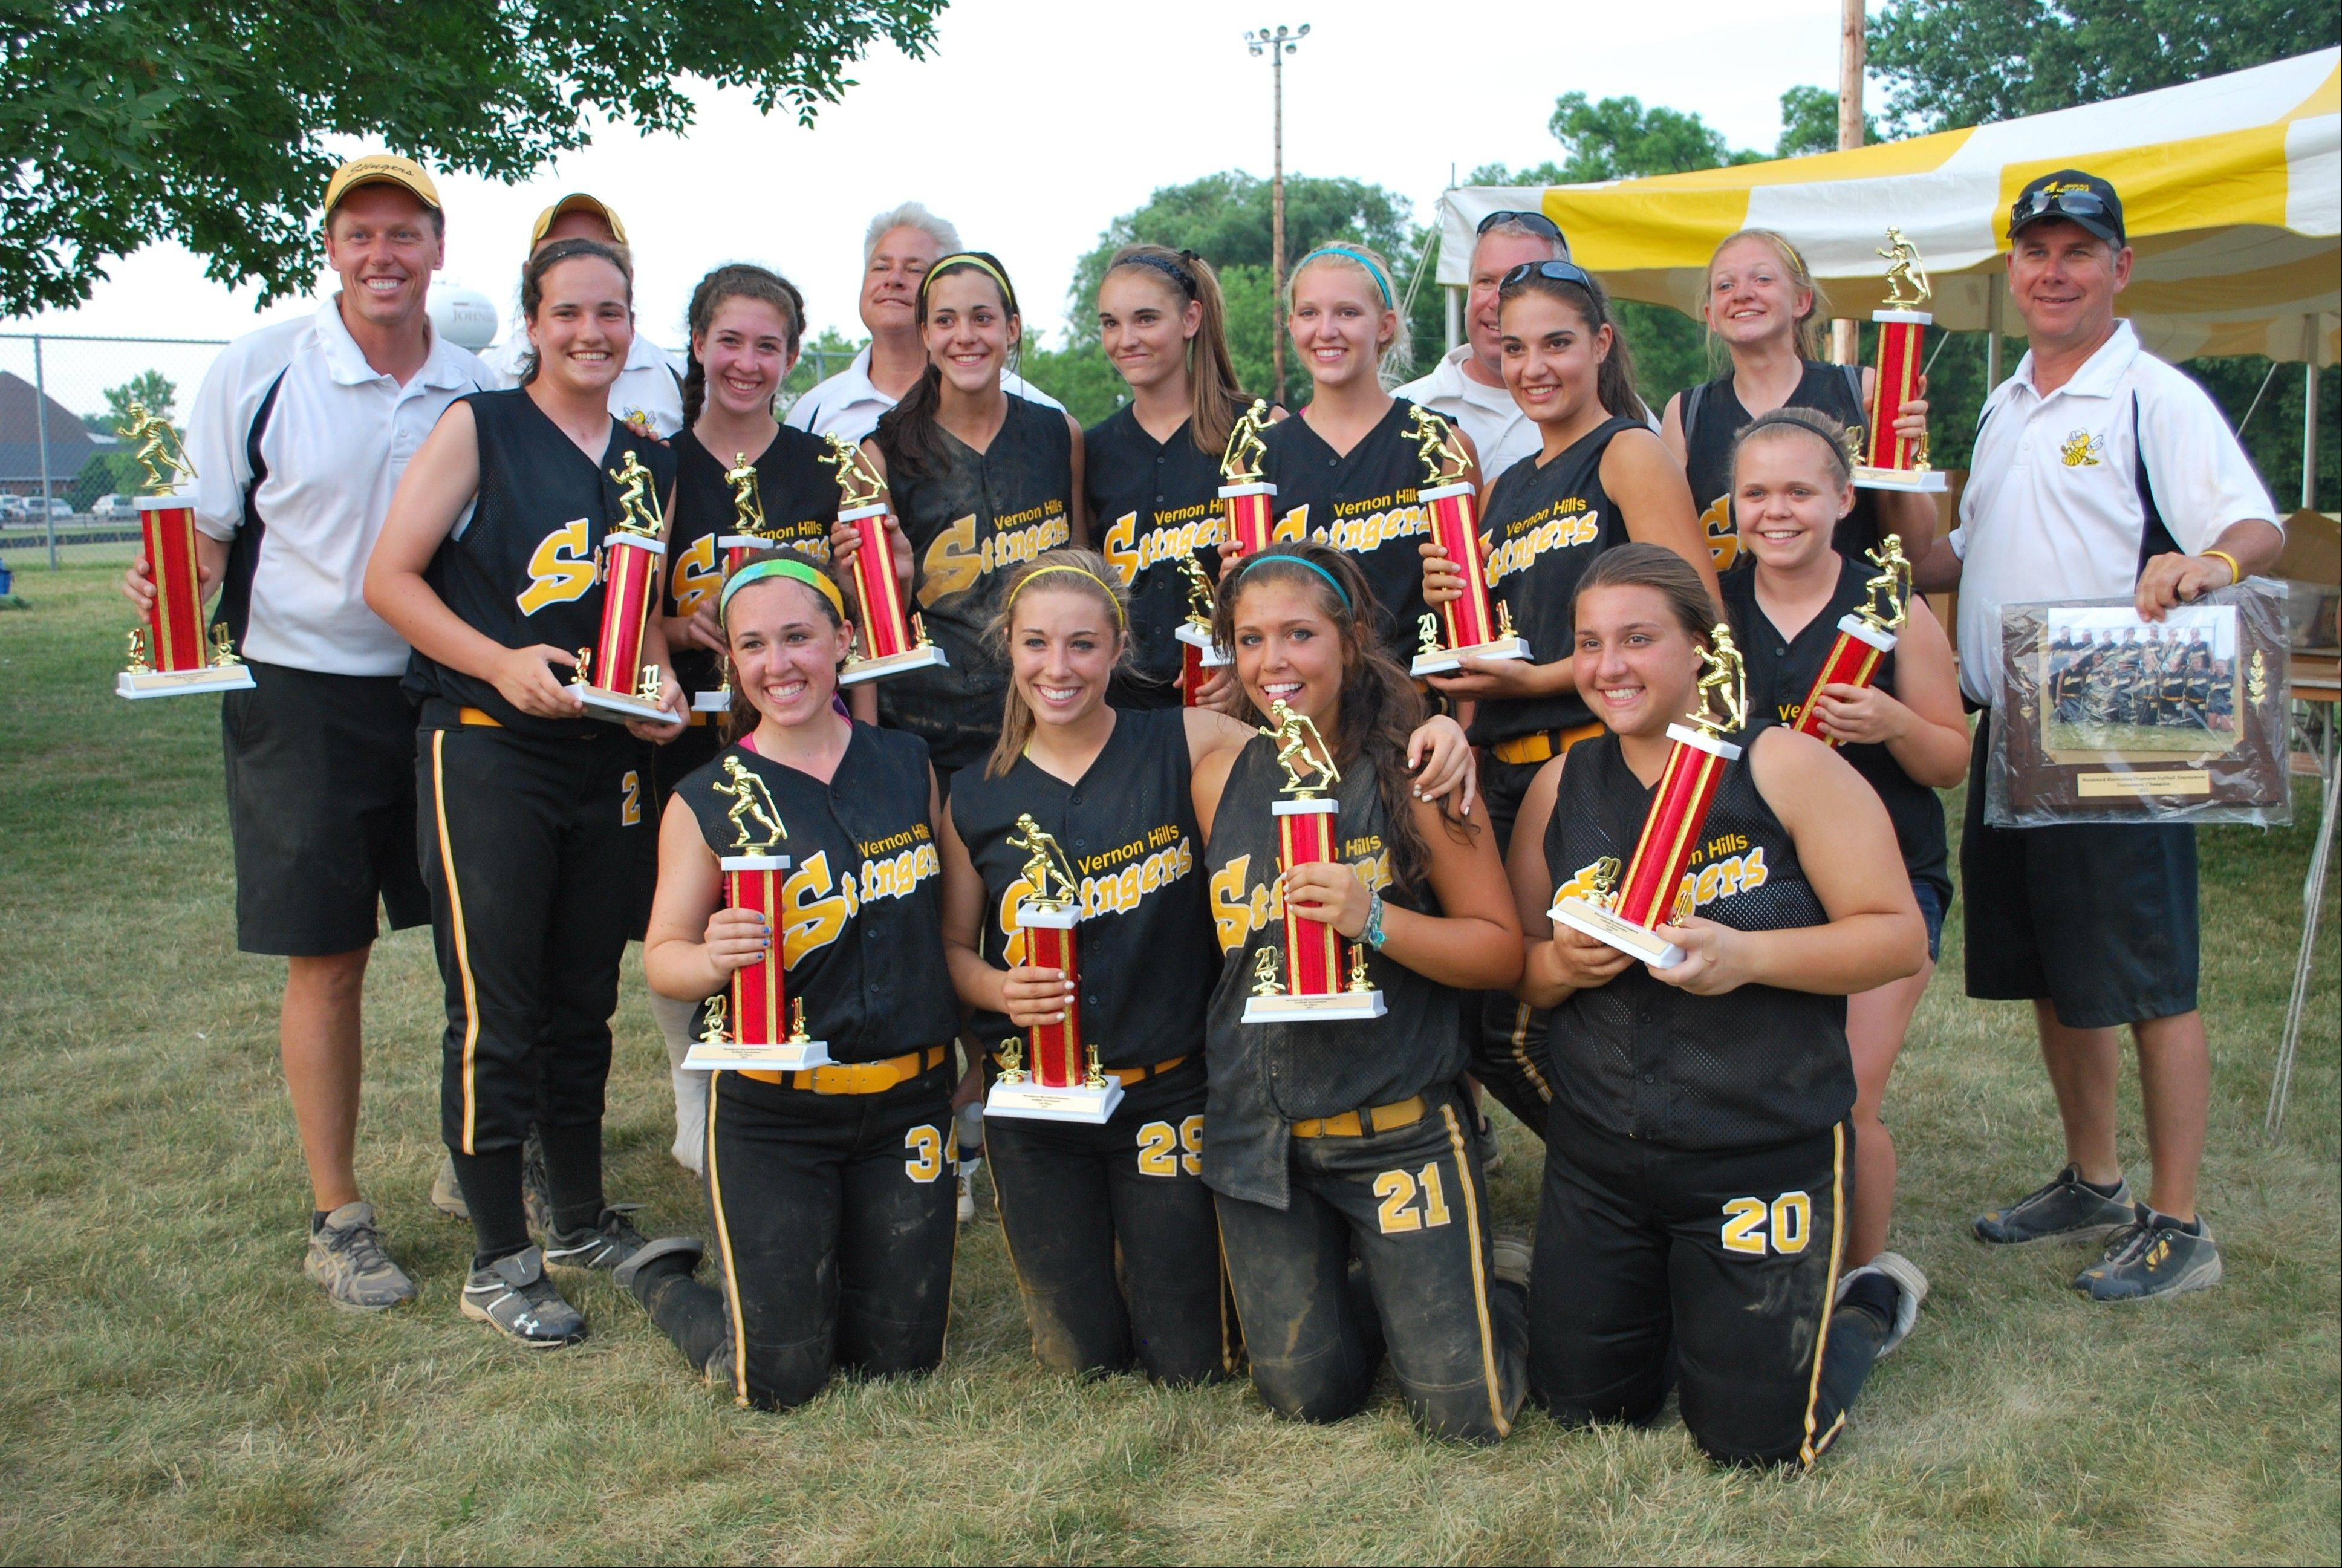 The Vernon Hills Stingers 16U elite team won the McHenry County Heatwave tournament last weekend.